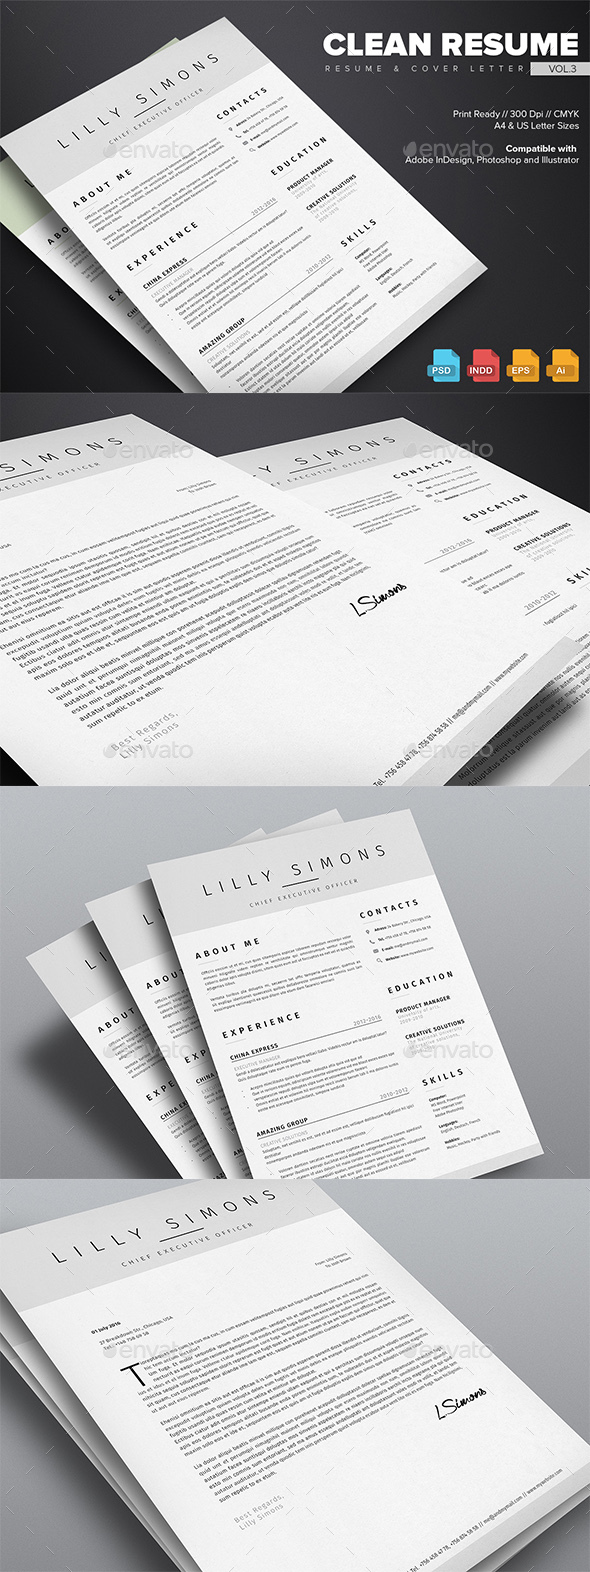 Clean Resume Vol.3